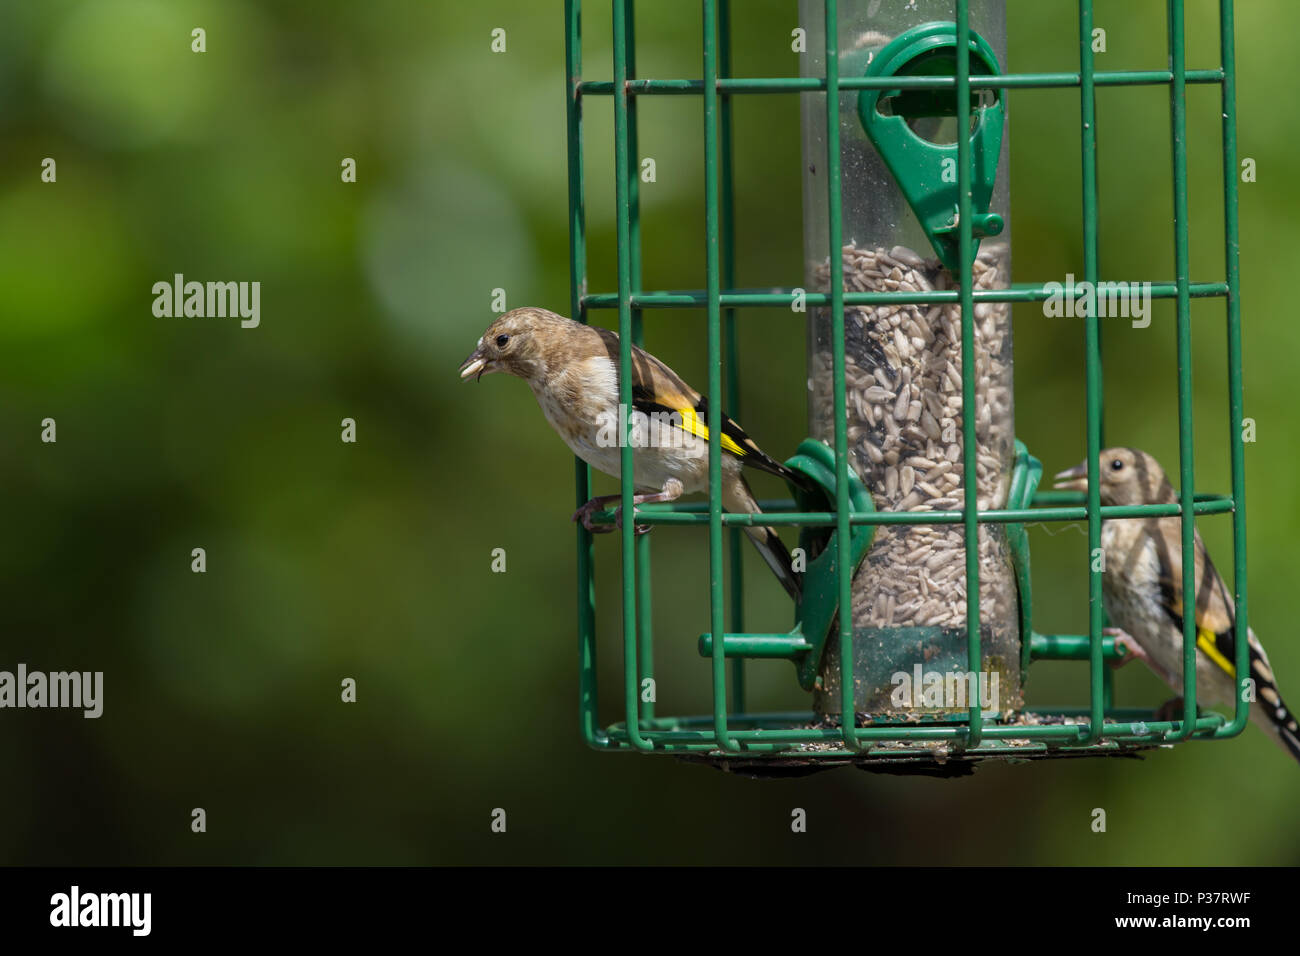 Goldfinch.  Carduelis carduelis Two Fledglings on sunflower feeder. British Isles - Stock Image